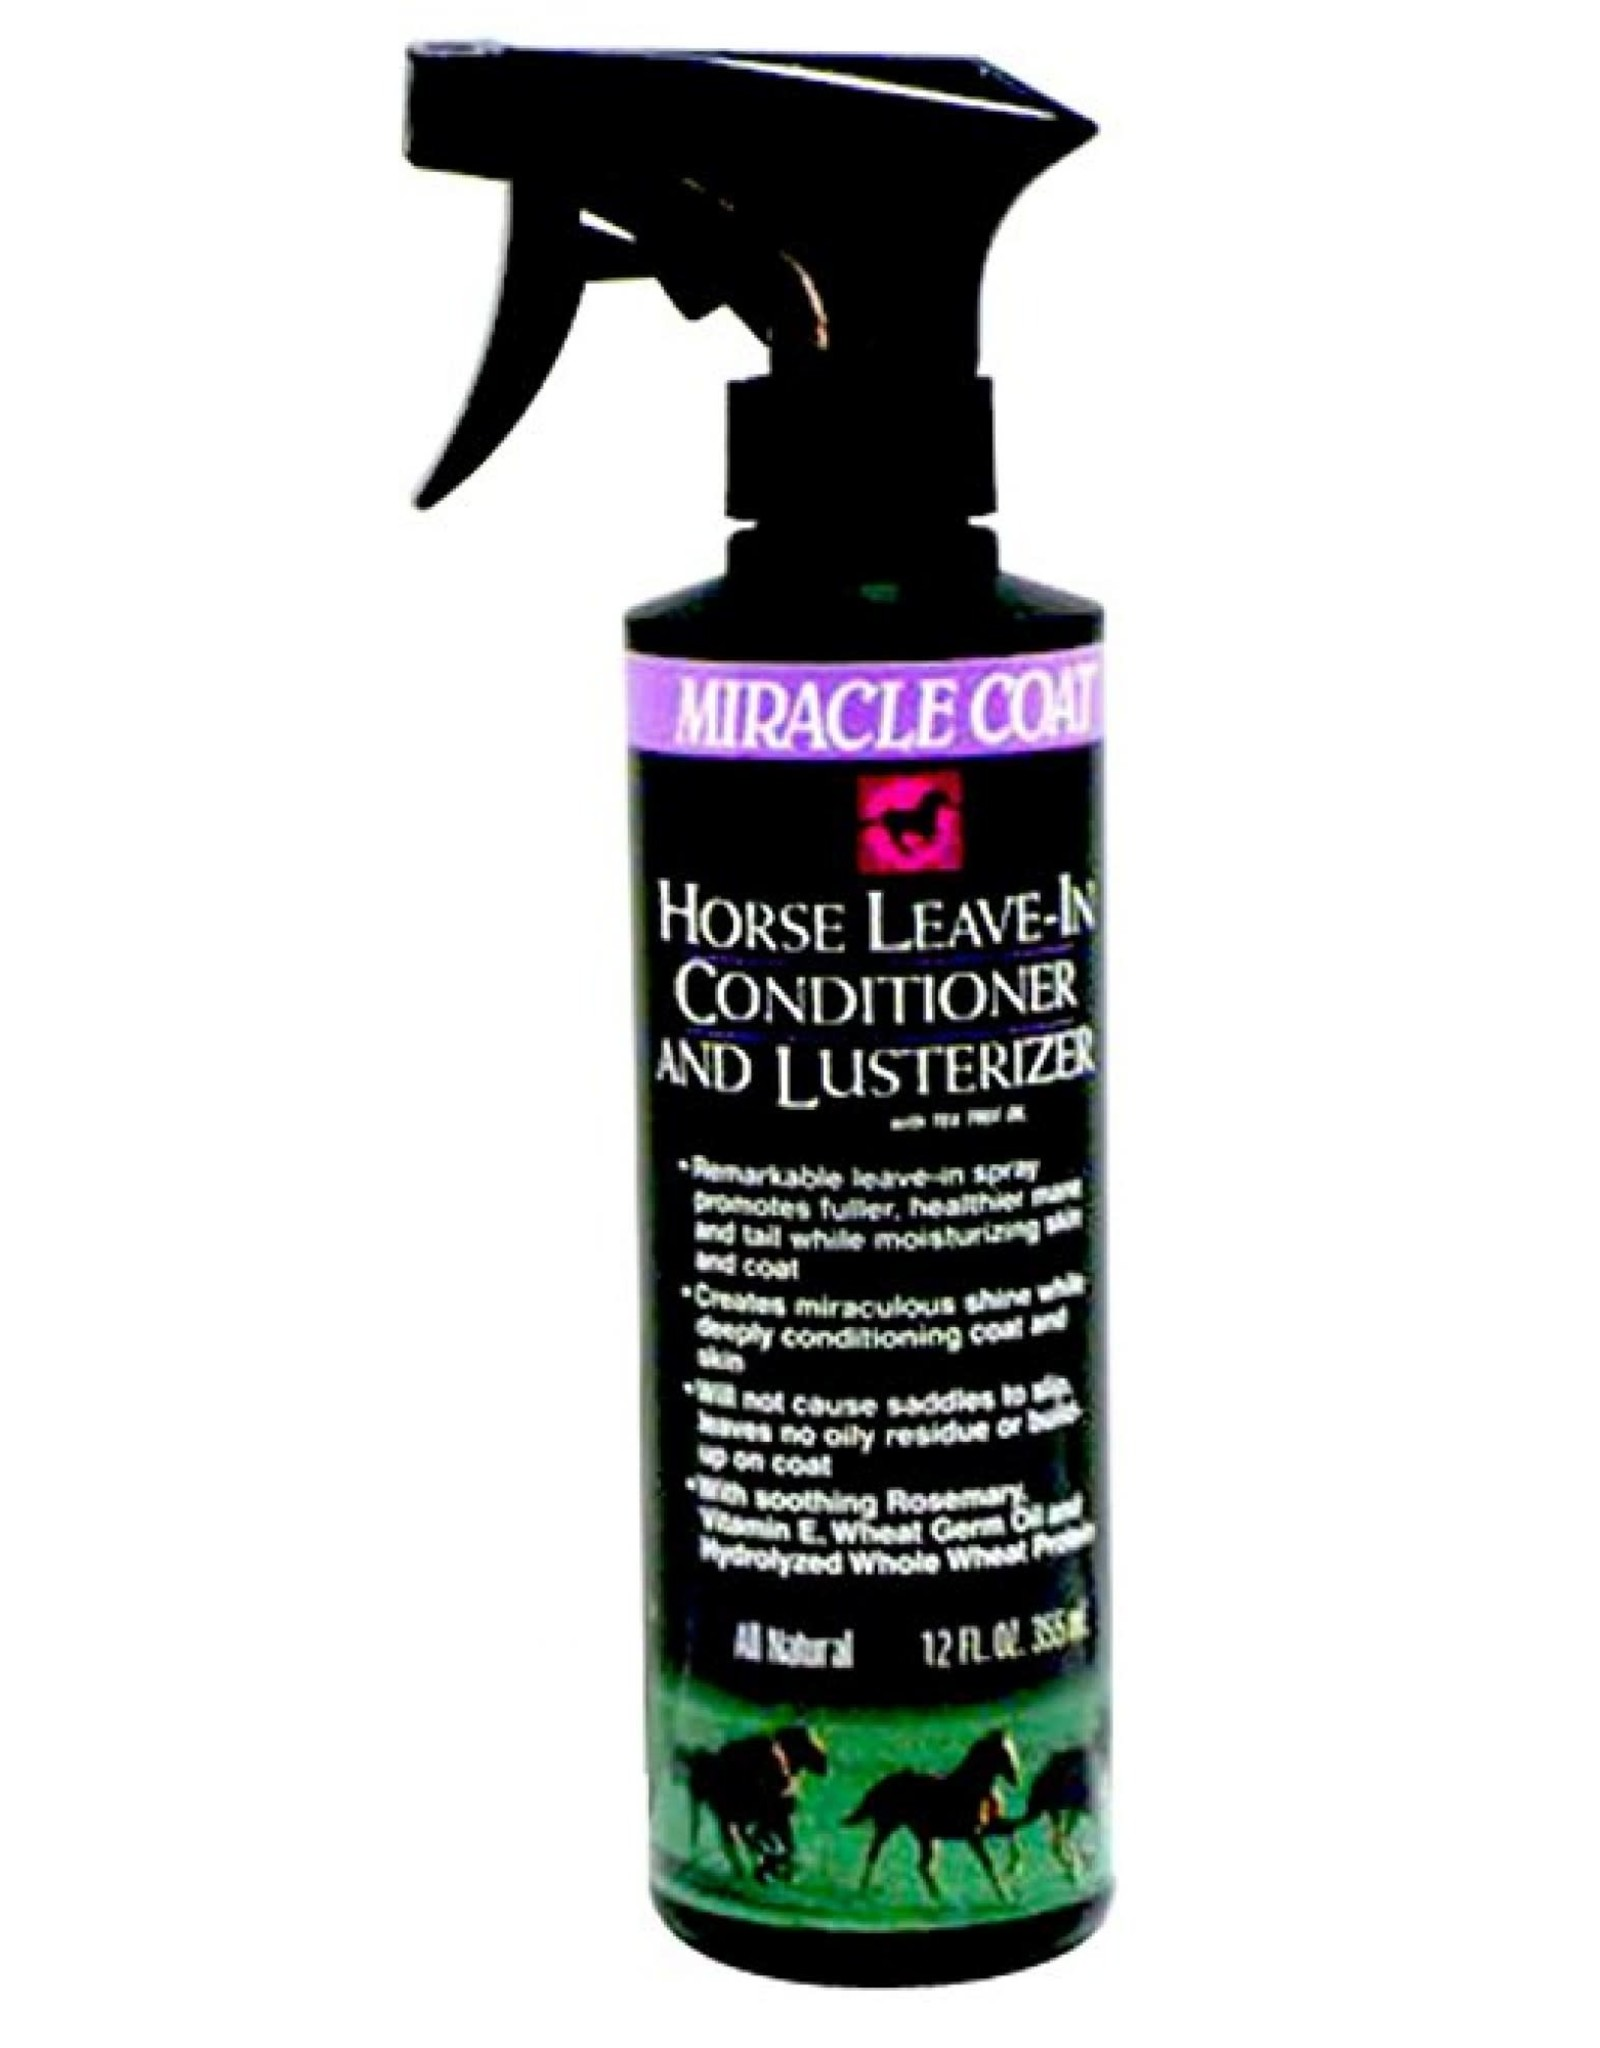 Miracle Coat Horse Leave-in Conditioner and Lusterizer